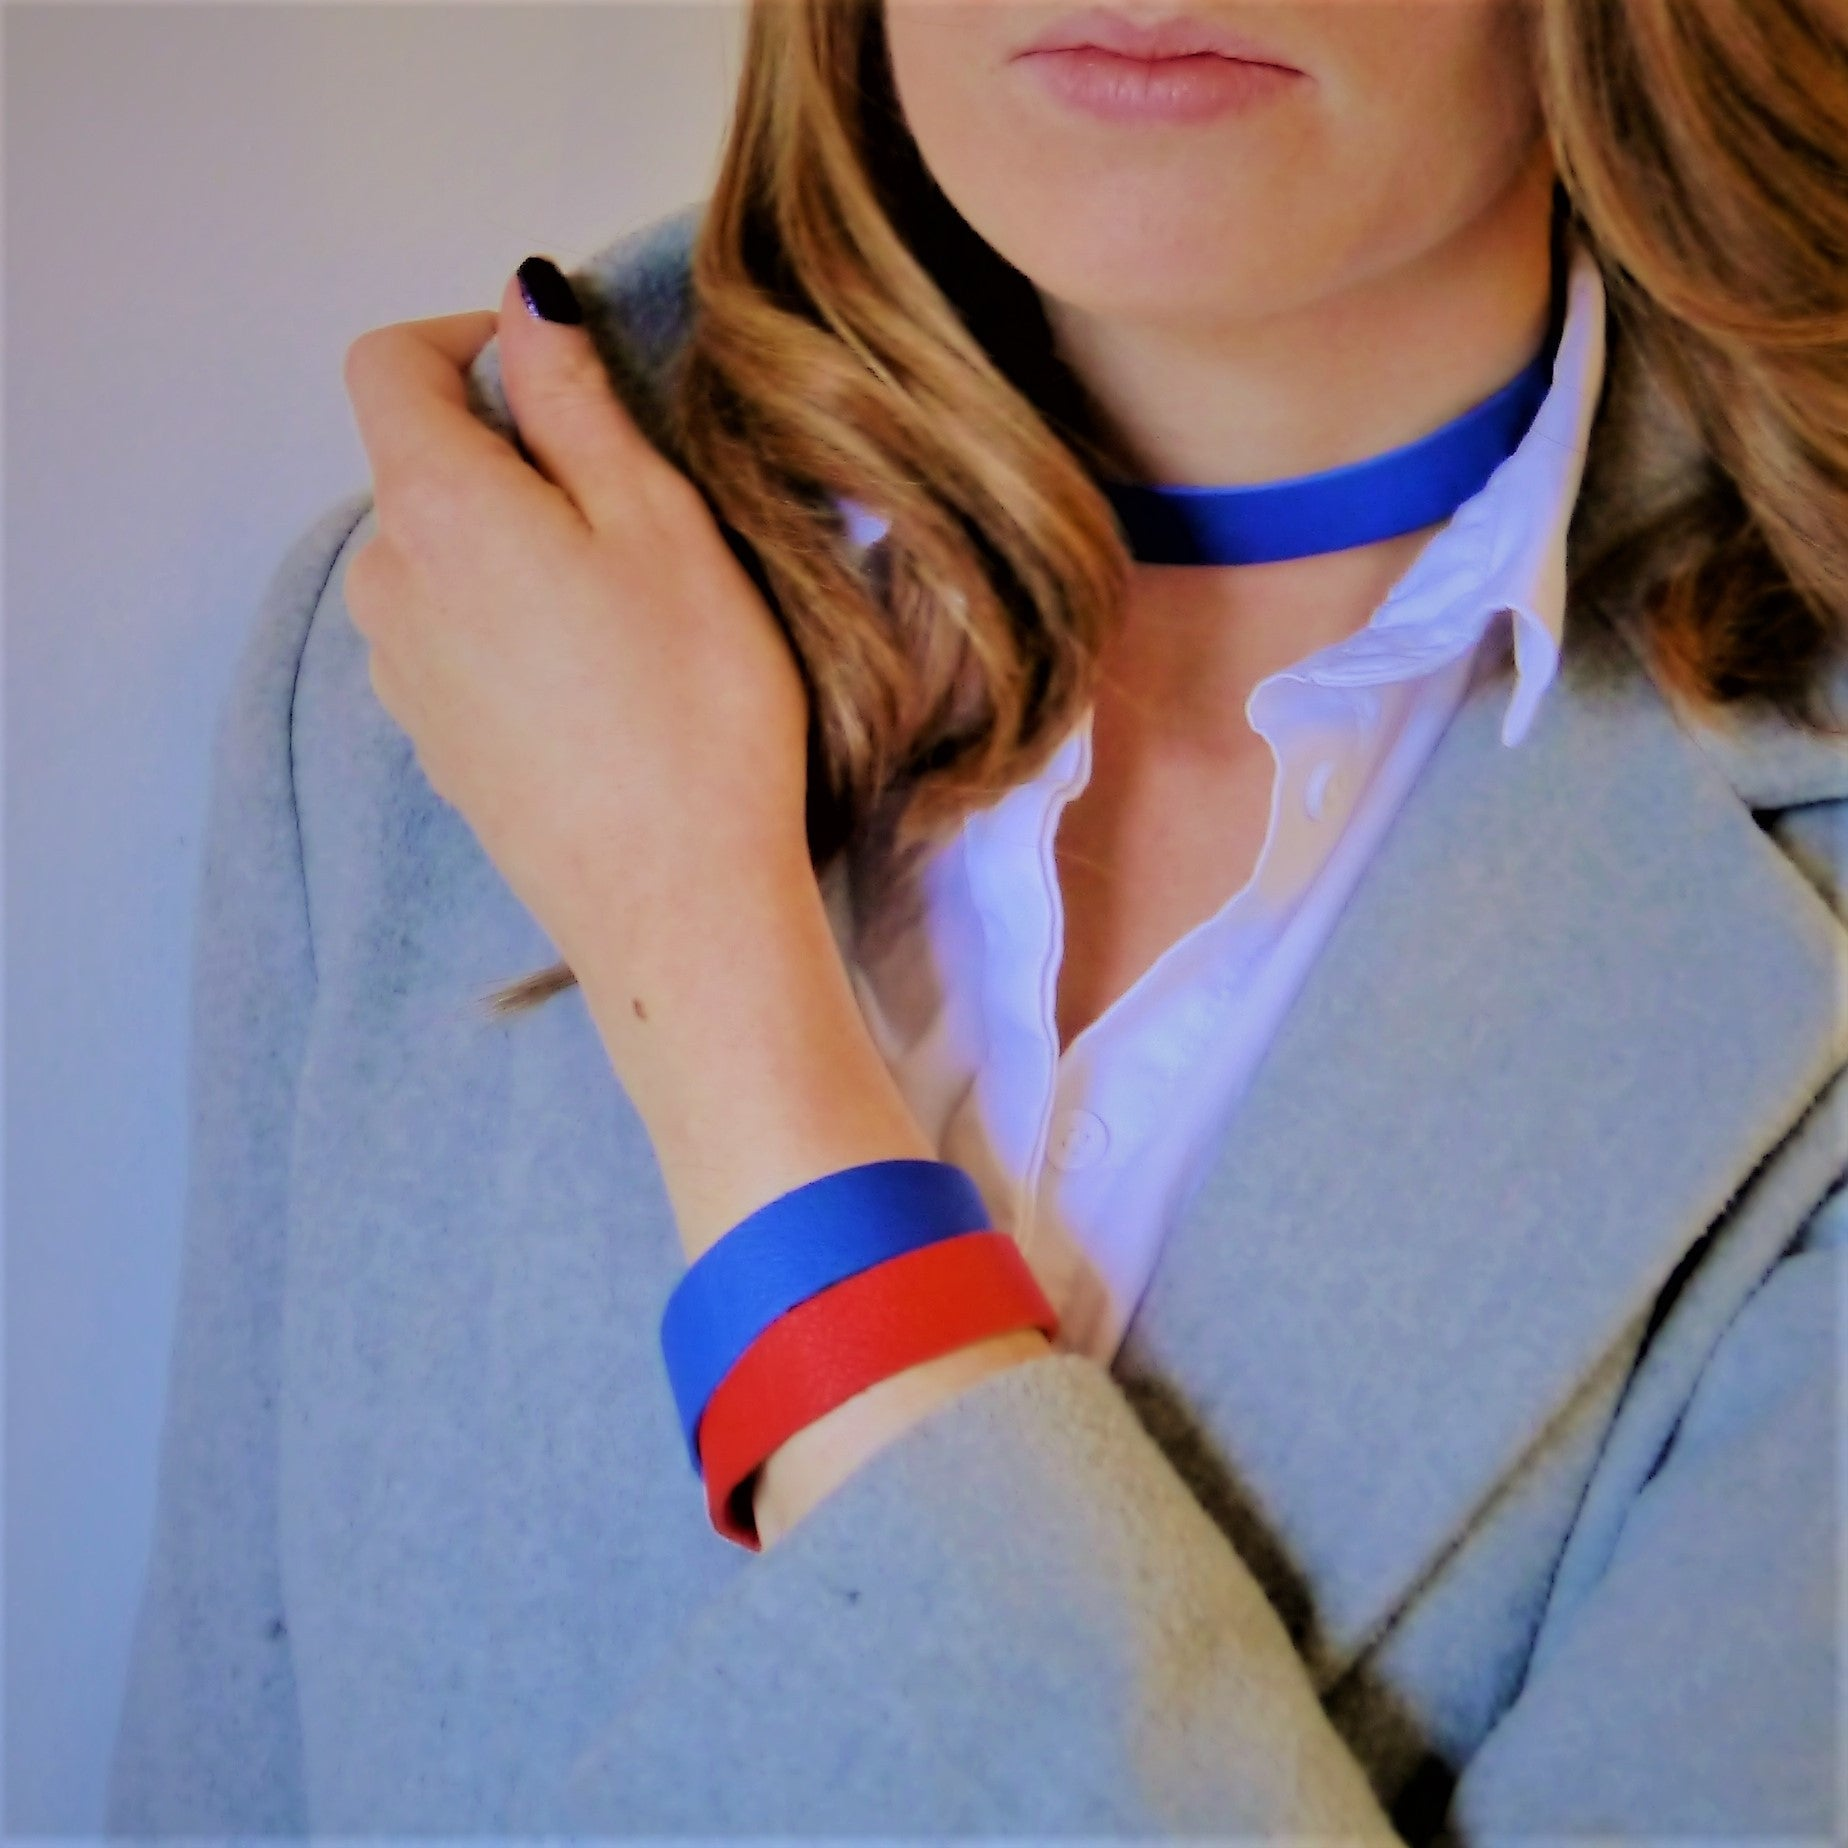 NEW IN - Leather choker - thin band - Blue